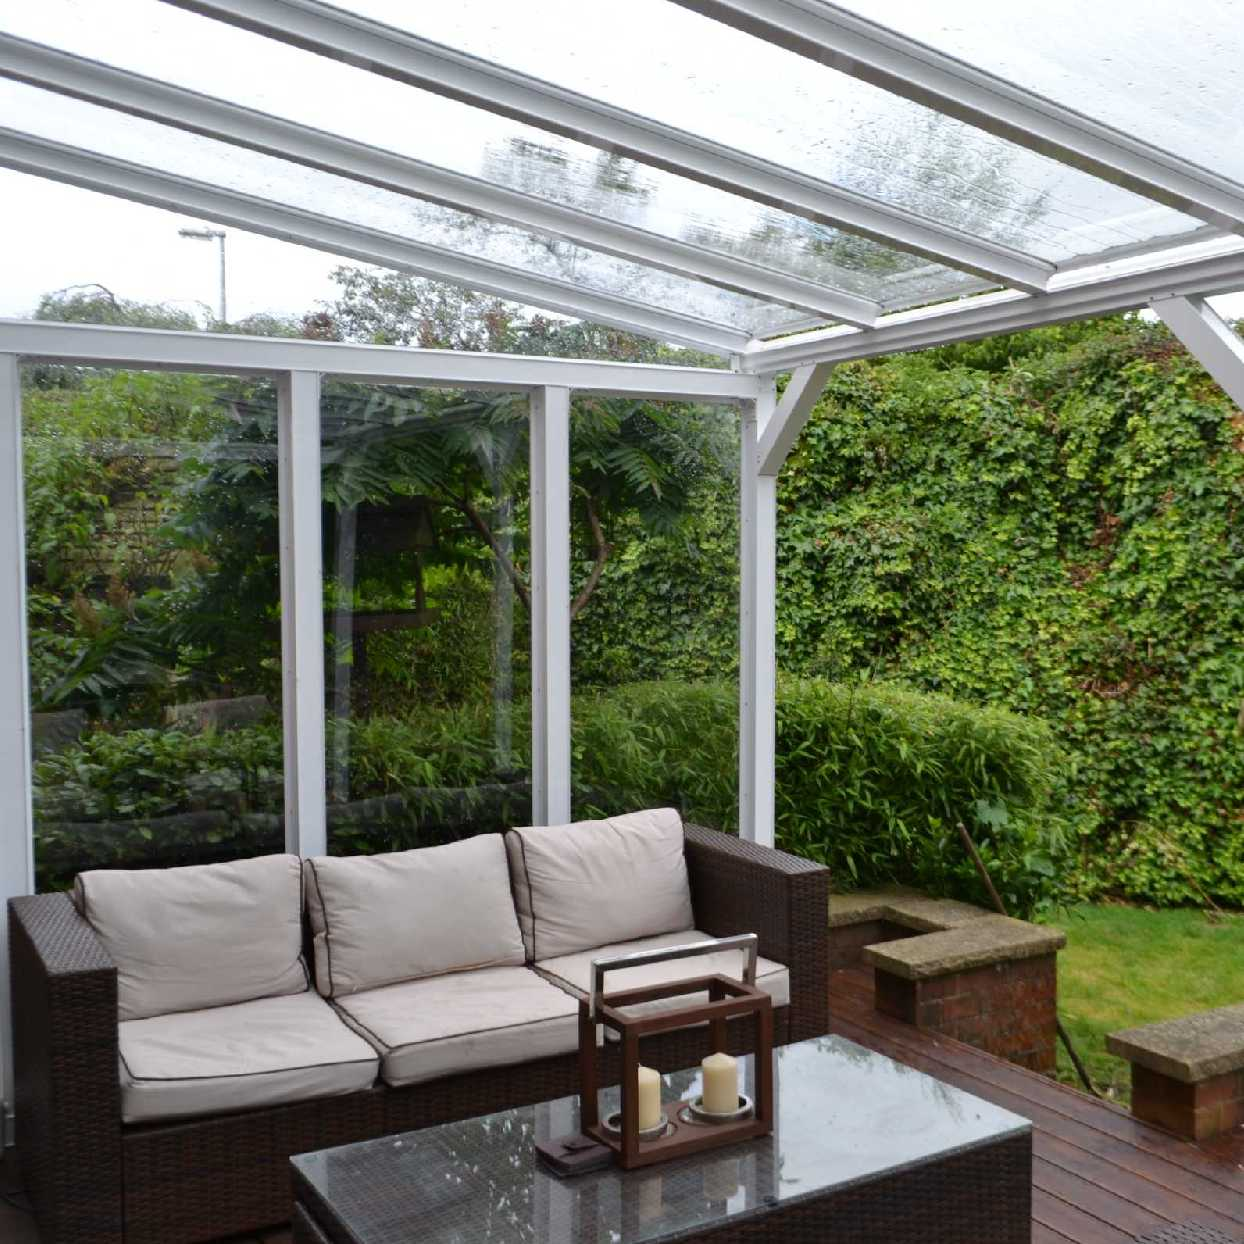 Great selection of Omega Smart White Lean-To Canopy with 16mm Polycarbonate Glazing - 7.0m (W) x 4.5m (P), (4) Supporting Posts